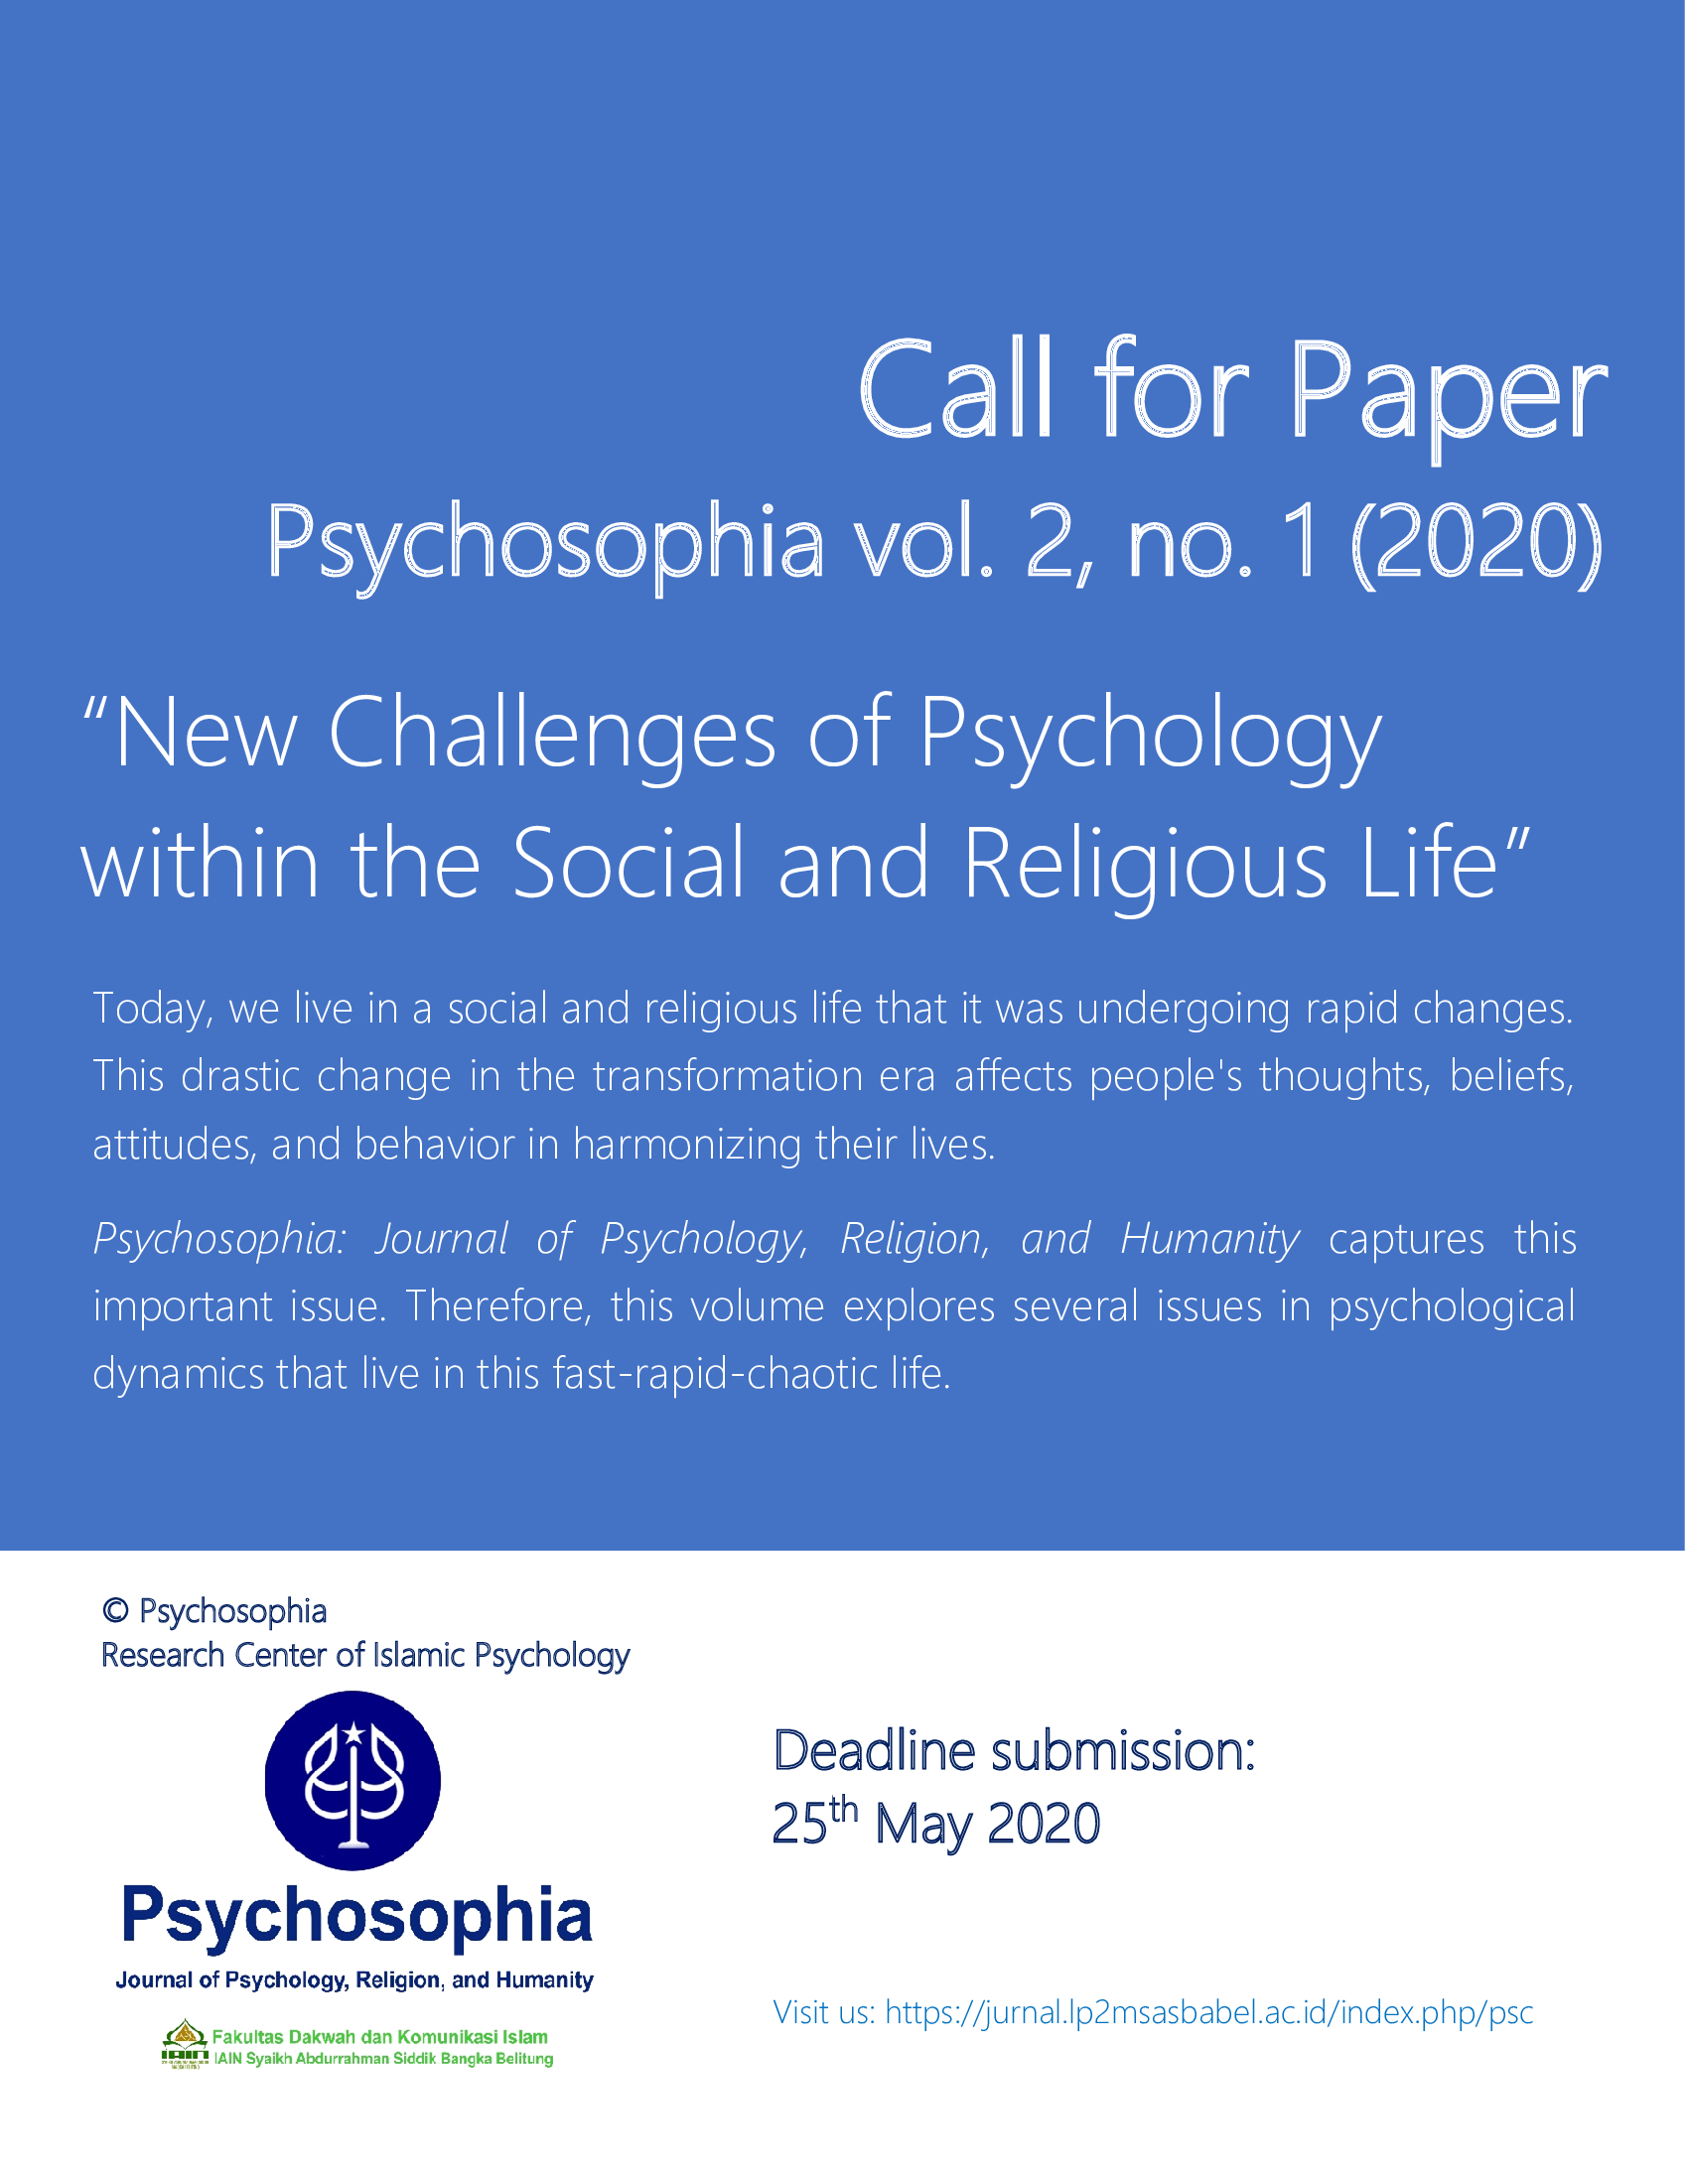 call_for_paper_Psychosophia_2,1_(2020).j